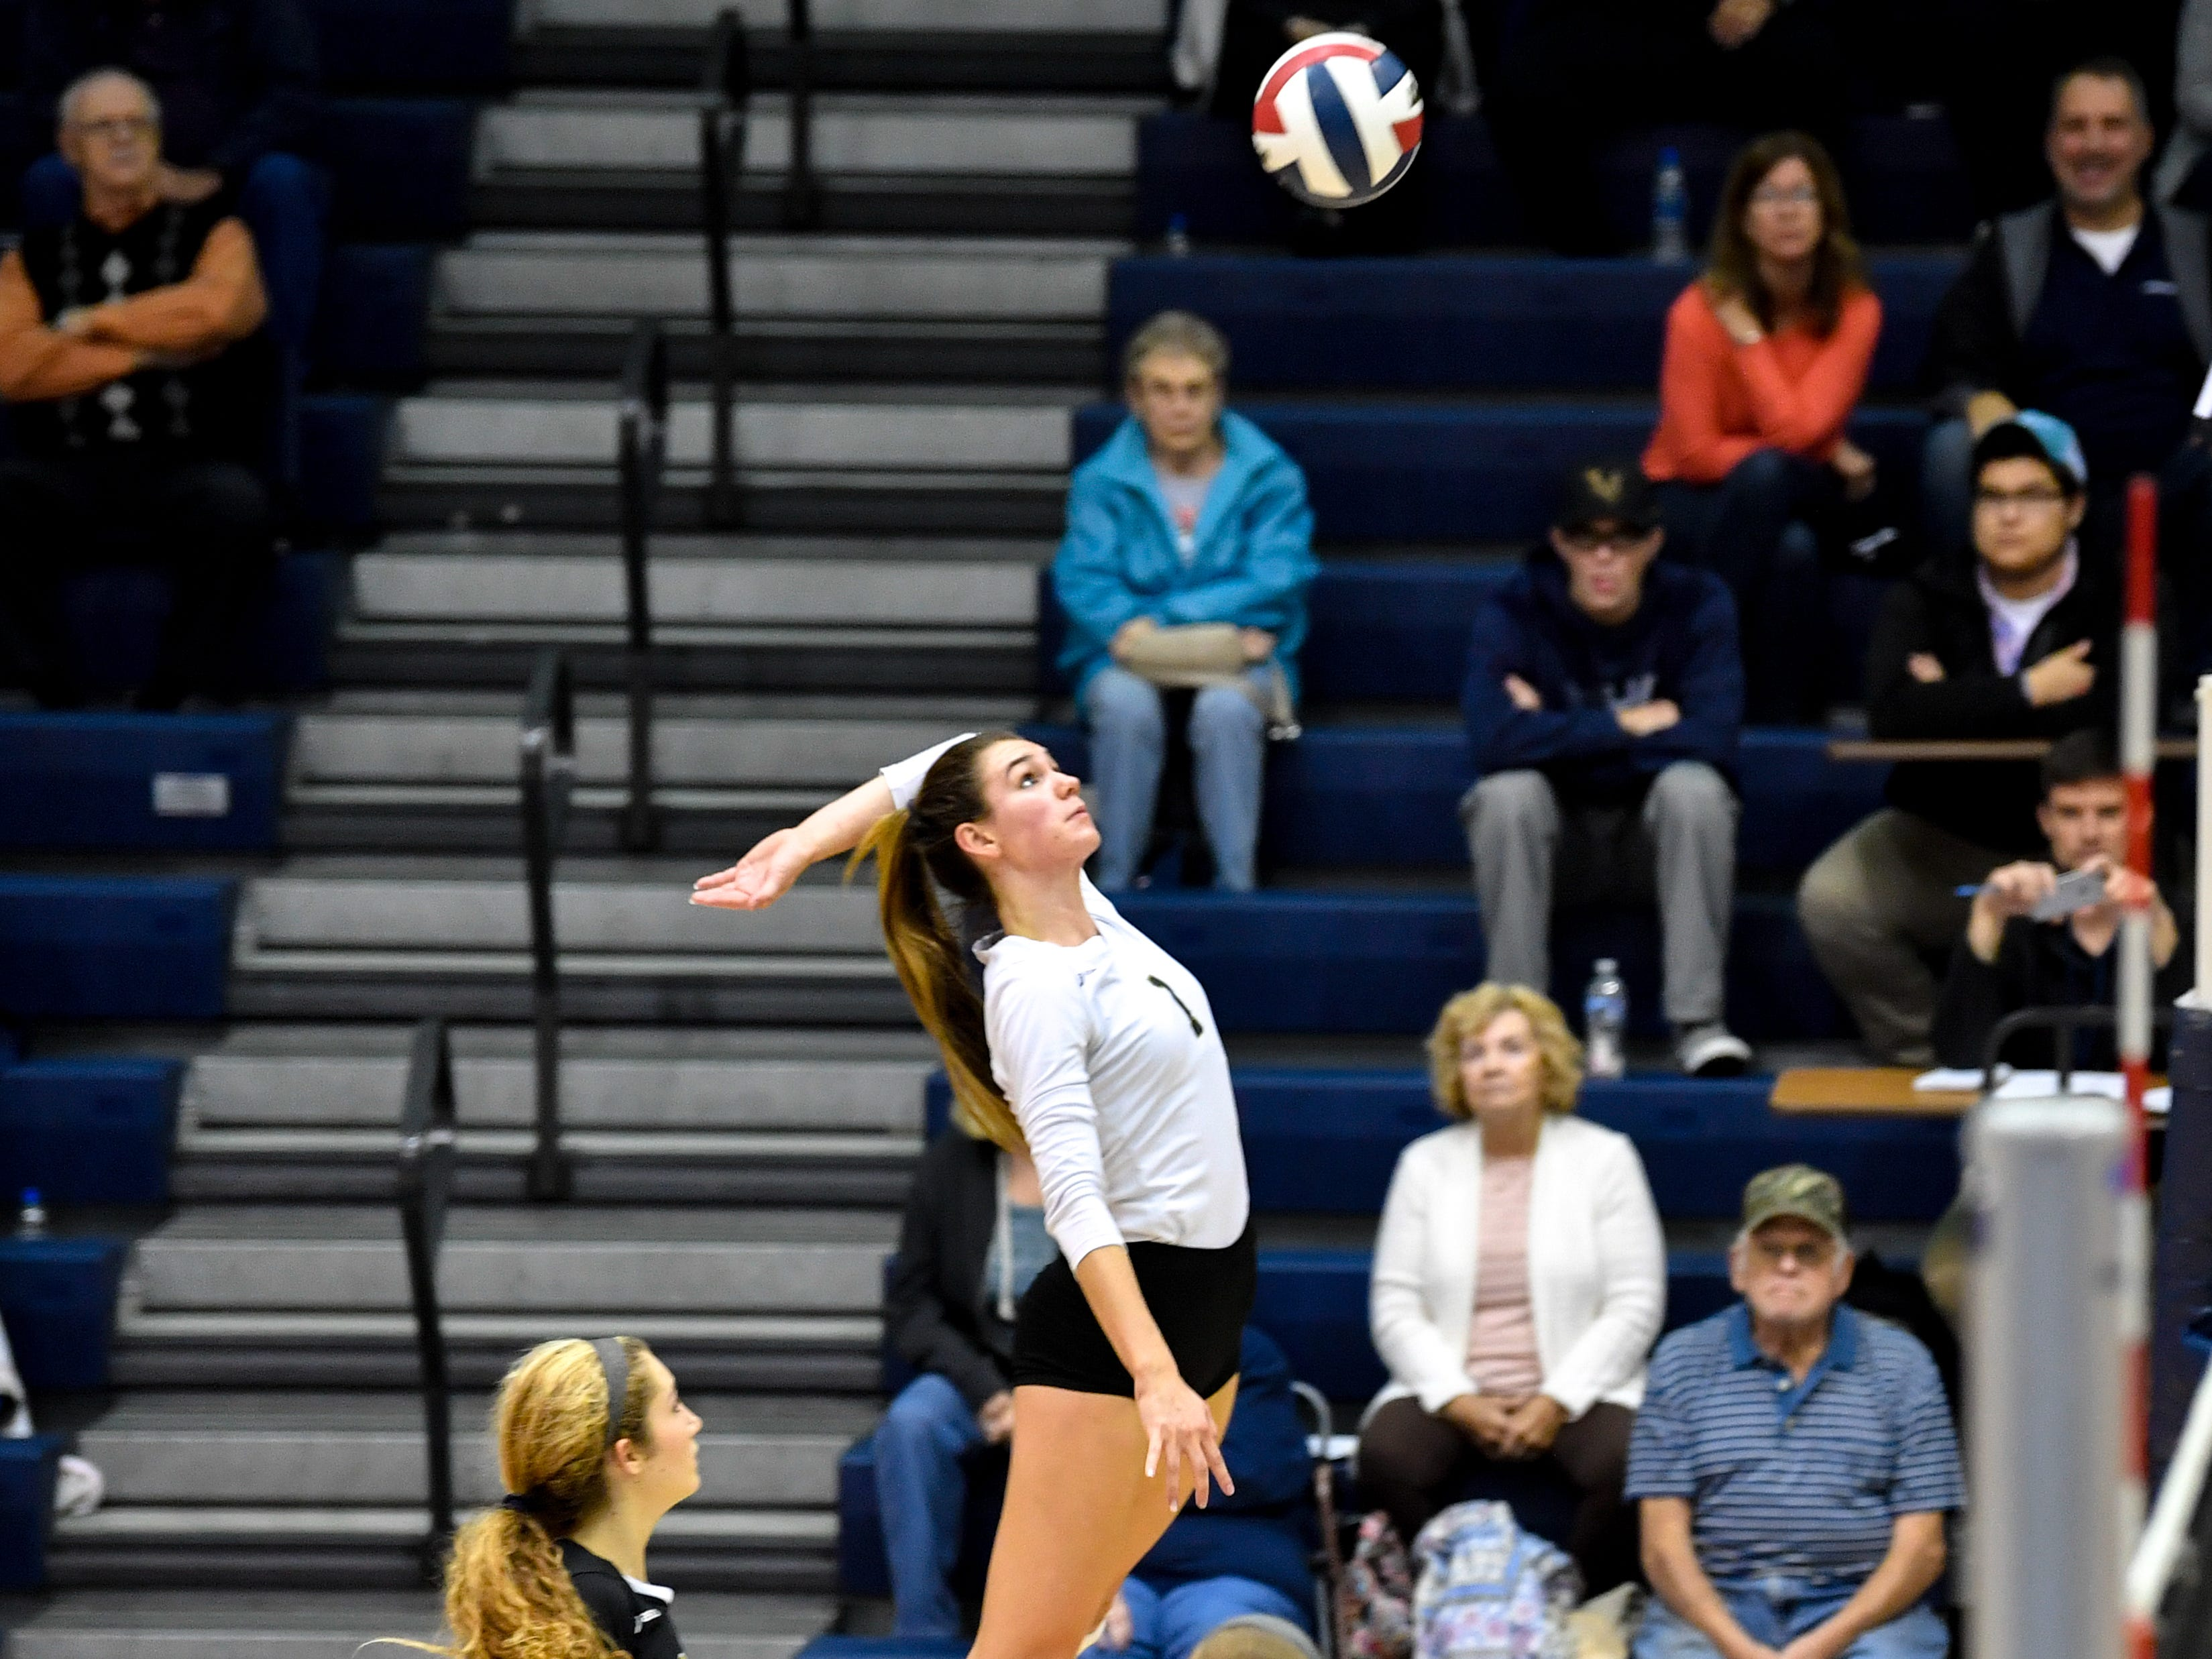 Maddie Clabaugh (1) of Delone Catholic rises up for a spike during the YAIAA league volleyball tournament semifinals between Eastern York and Delone Catholic, Tuesday, October 23, 2018. The Squirettes defeated the Golden Knights 3-2.